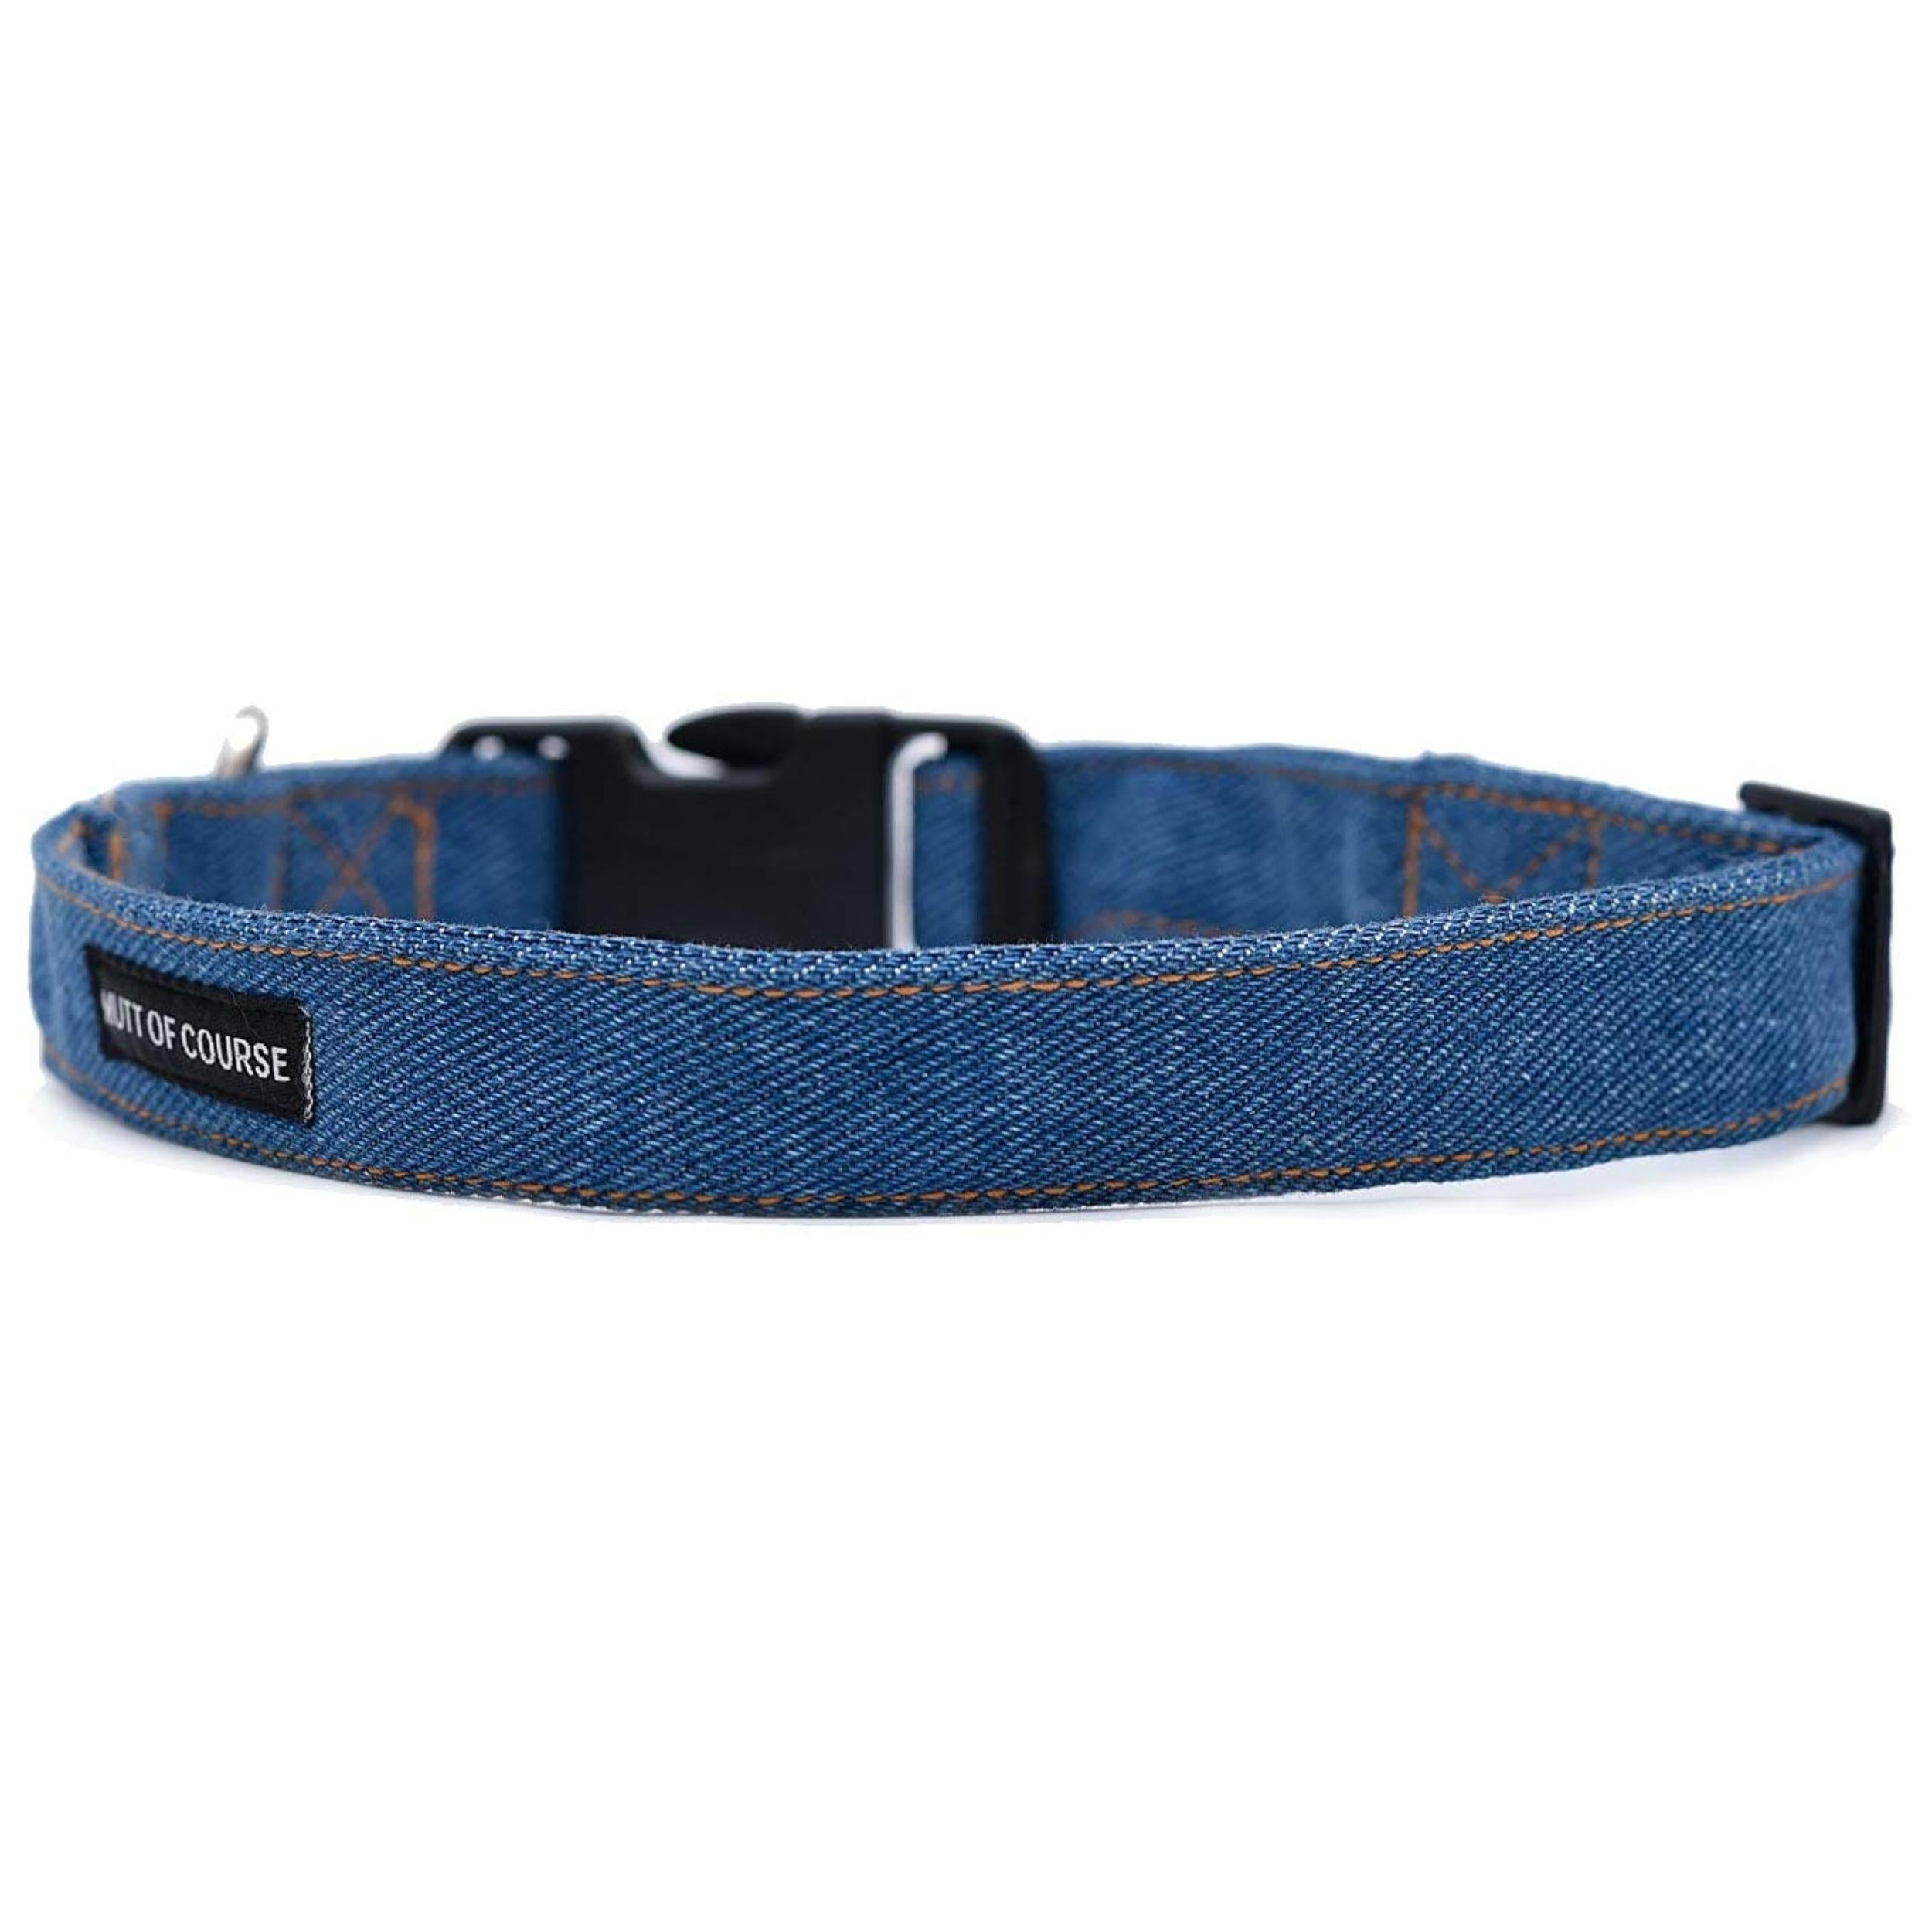 Mutt of Course Dark Blue Denim Collar & Leash Set For Dogs - Poochles